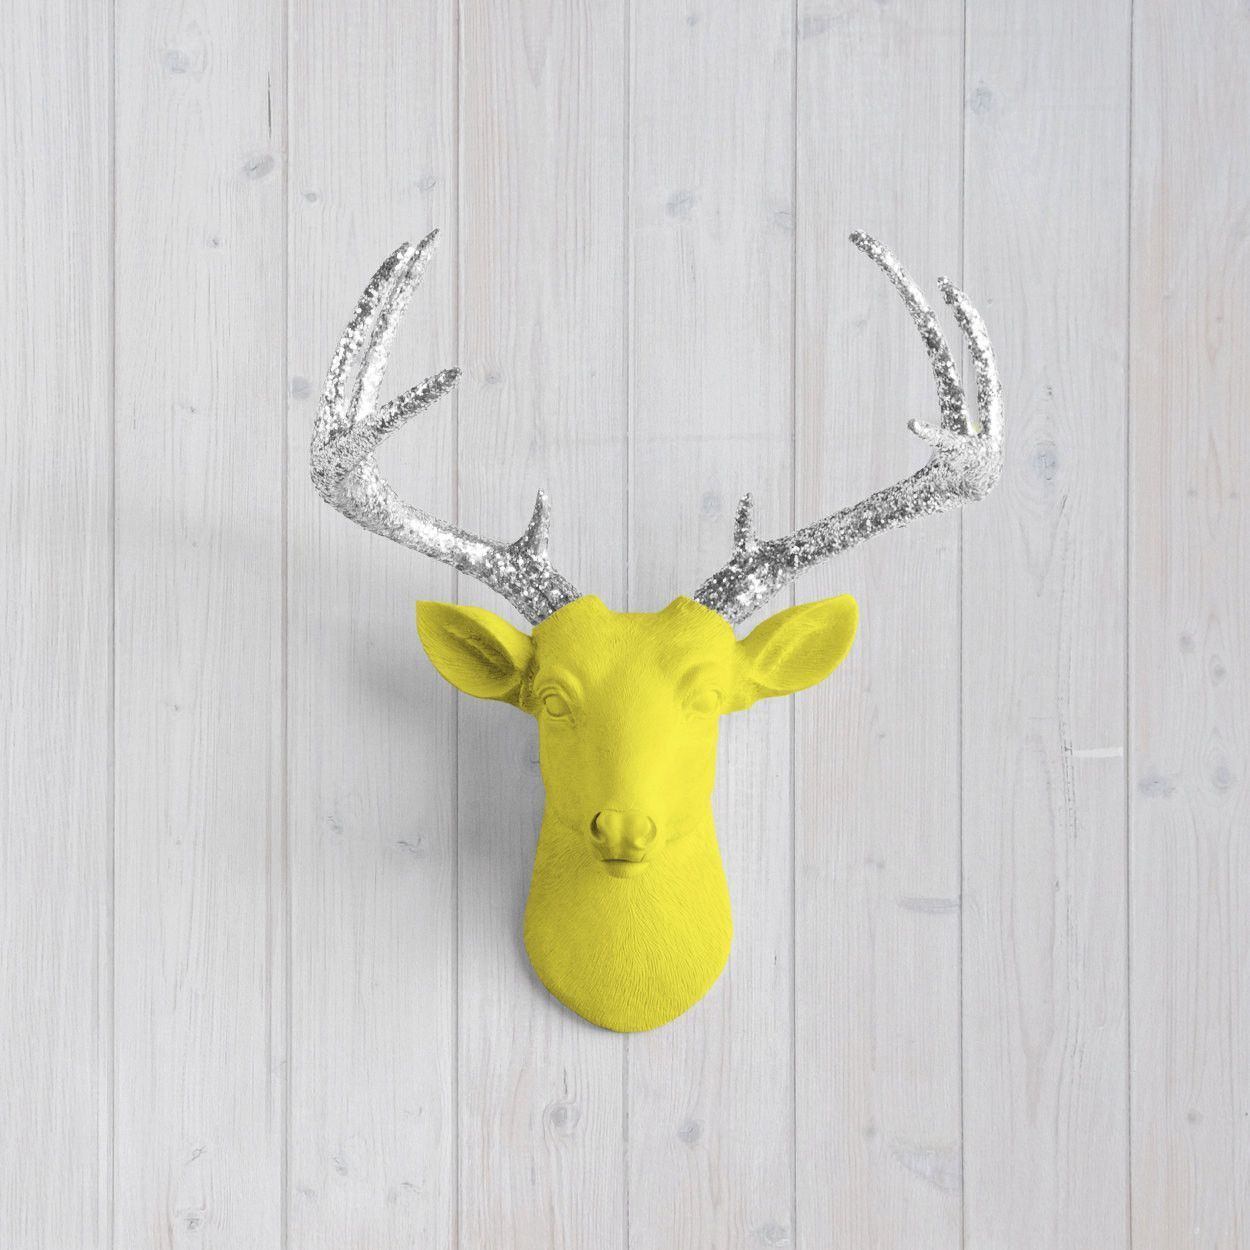 Magnificent Silver Antlers Wall Decor Inspiration - The Wall Art ...